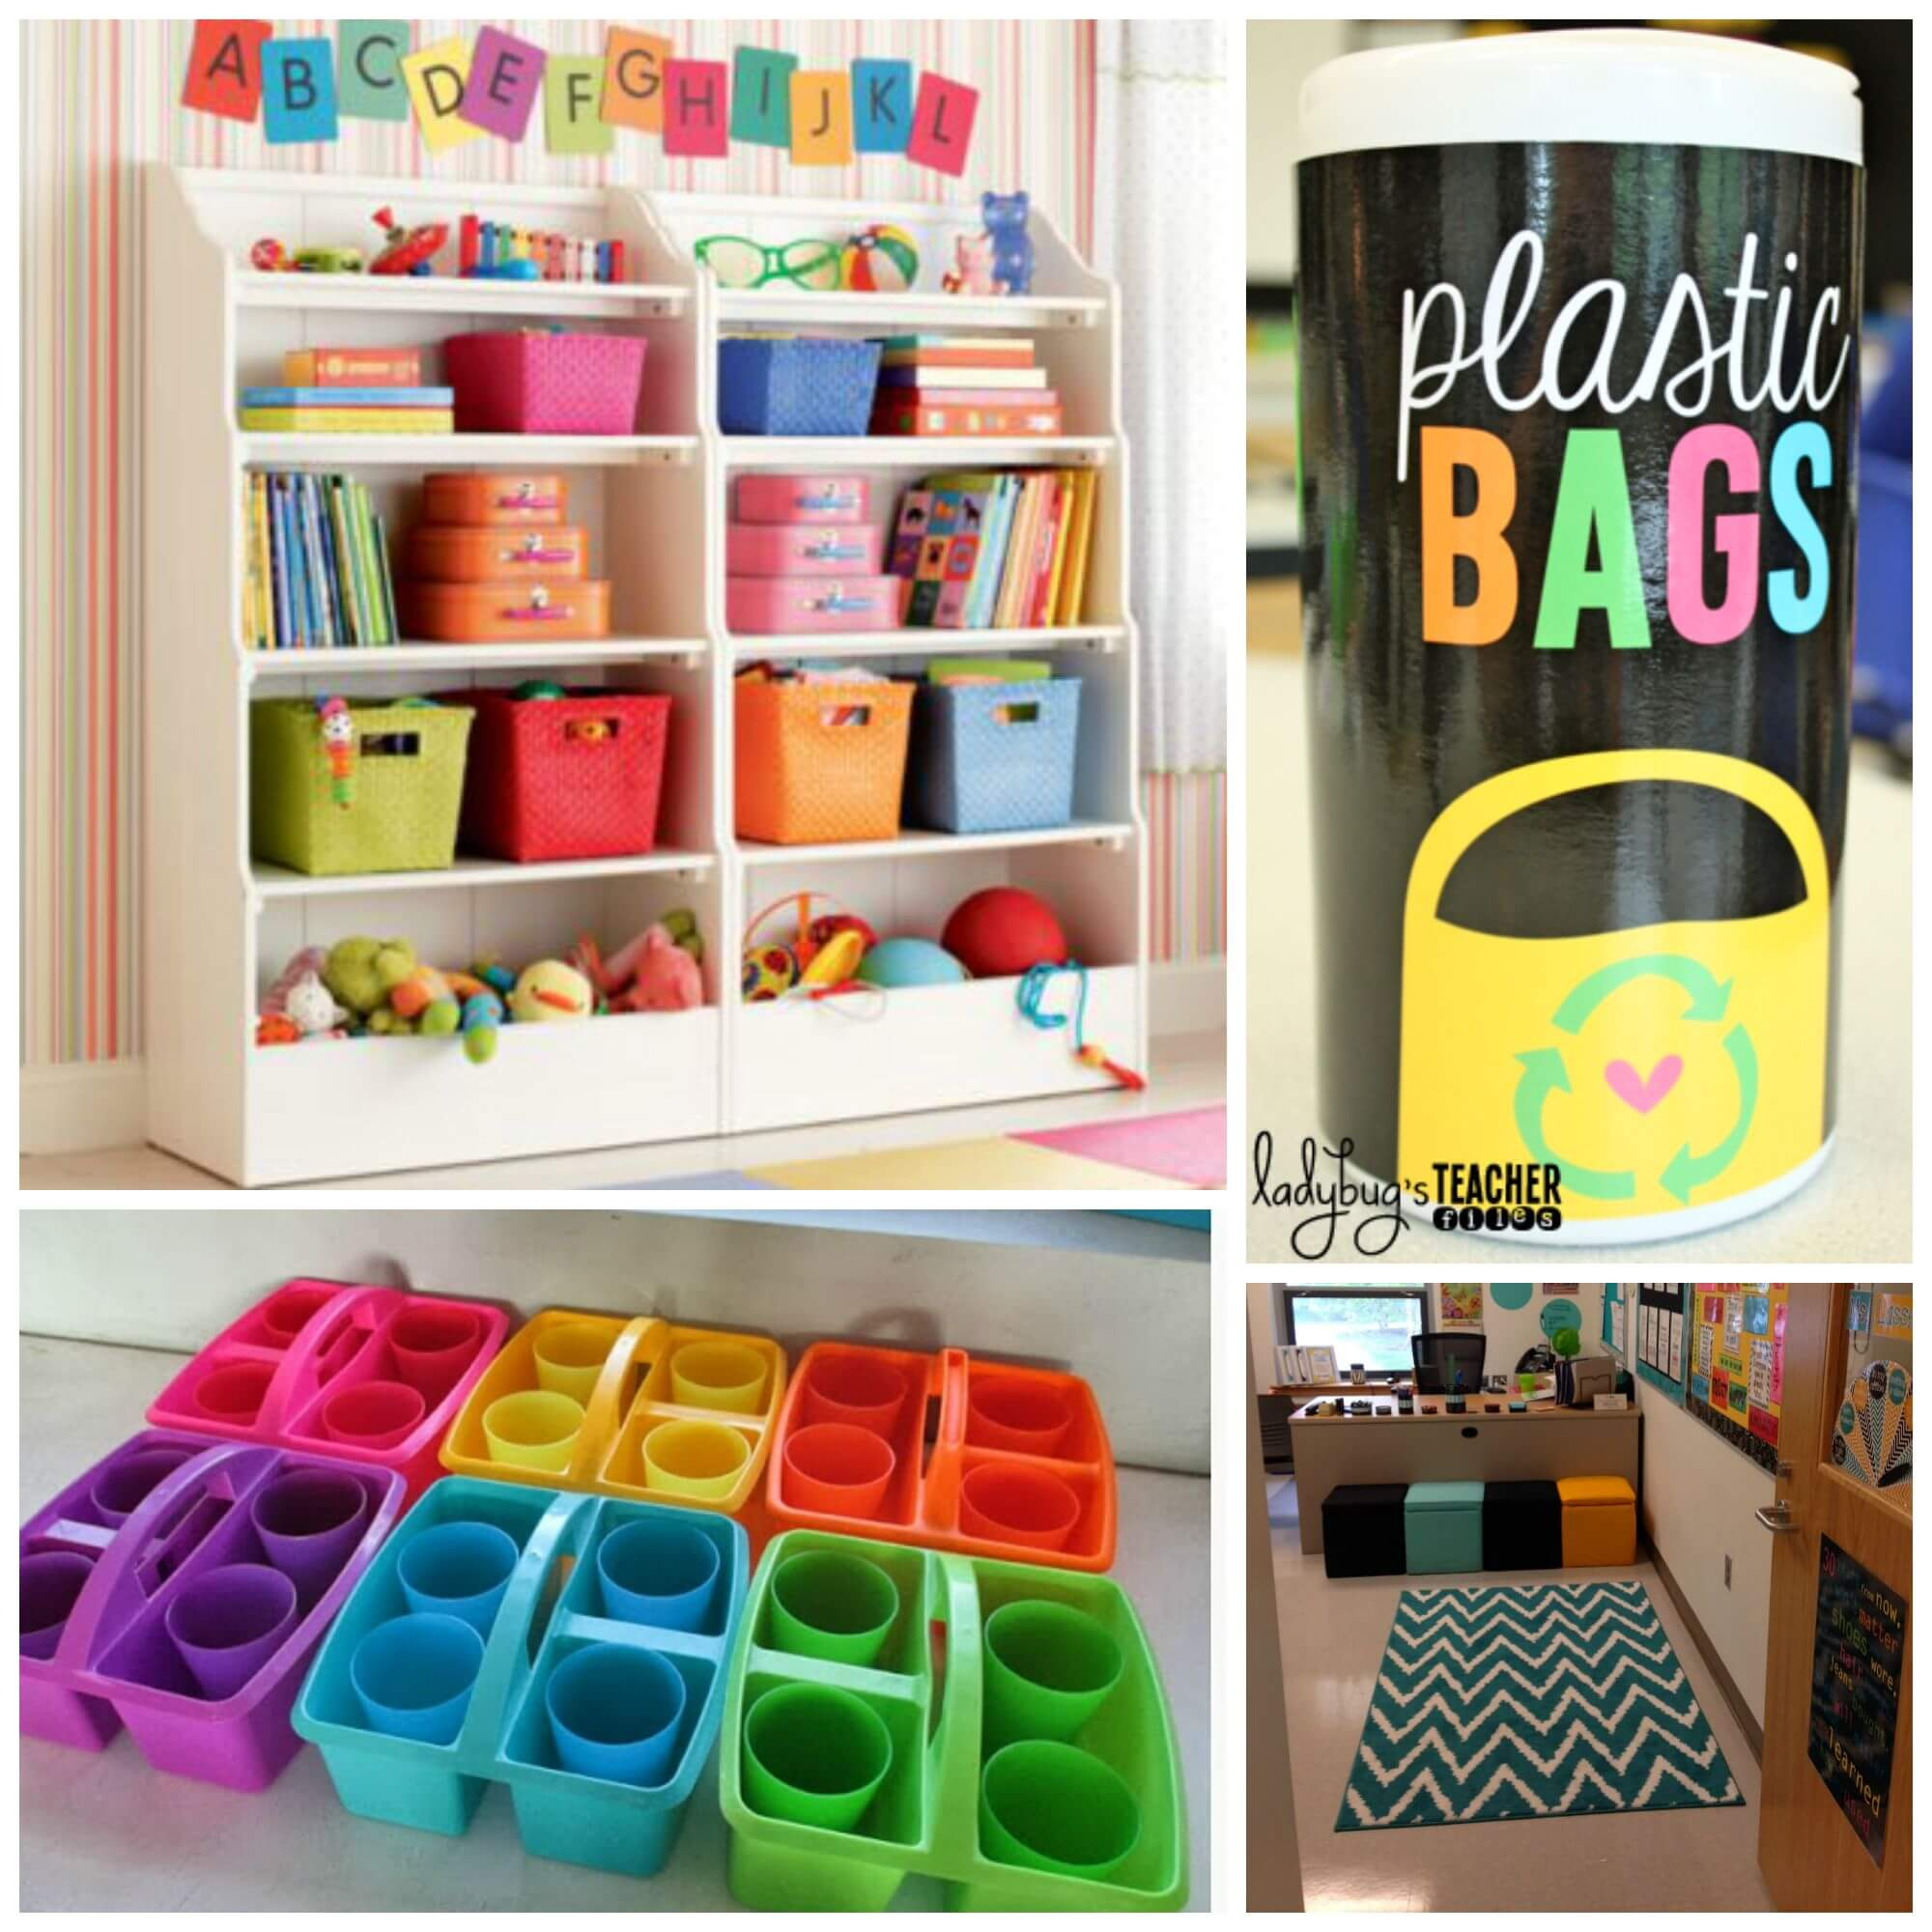 Classroom decorating ideas and also classroom themes and also school decoration